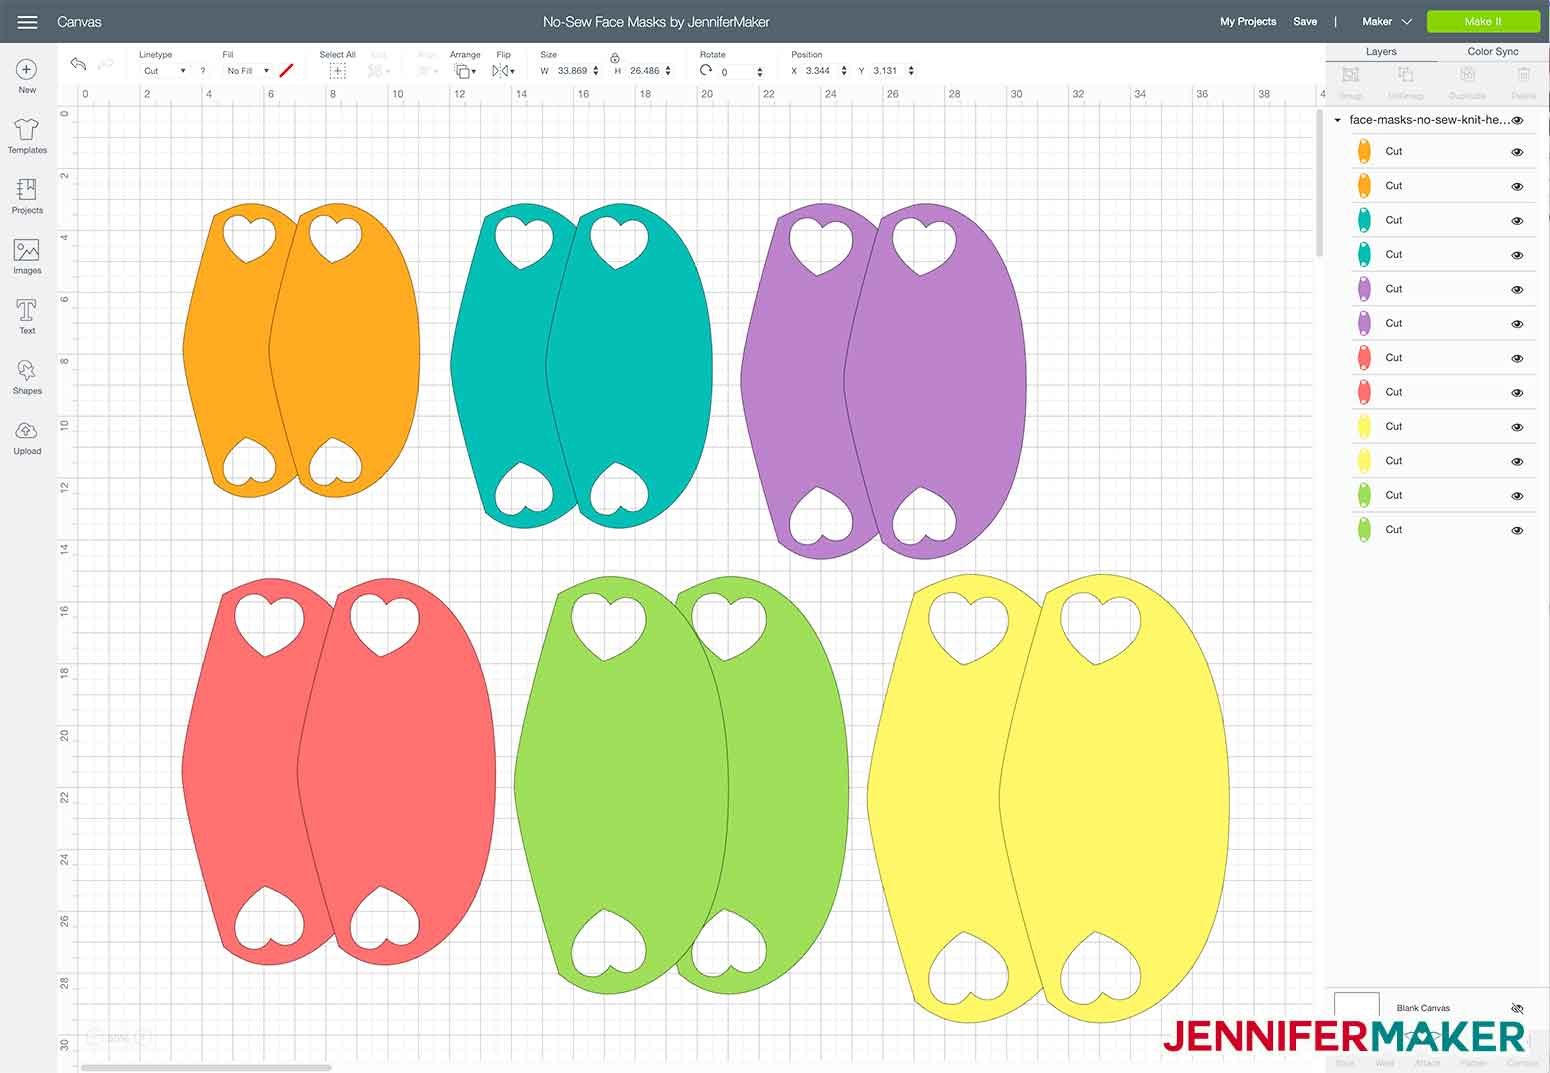 The no-sew face mask SVG cut file uploaded to Cricut Design Space